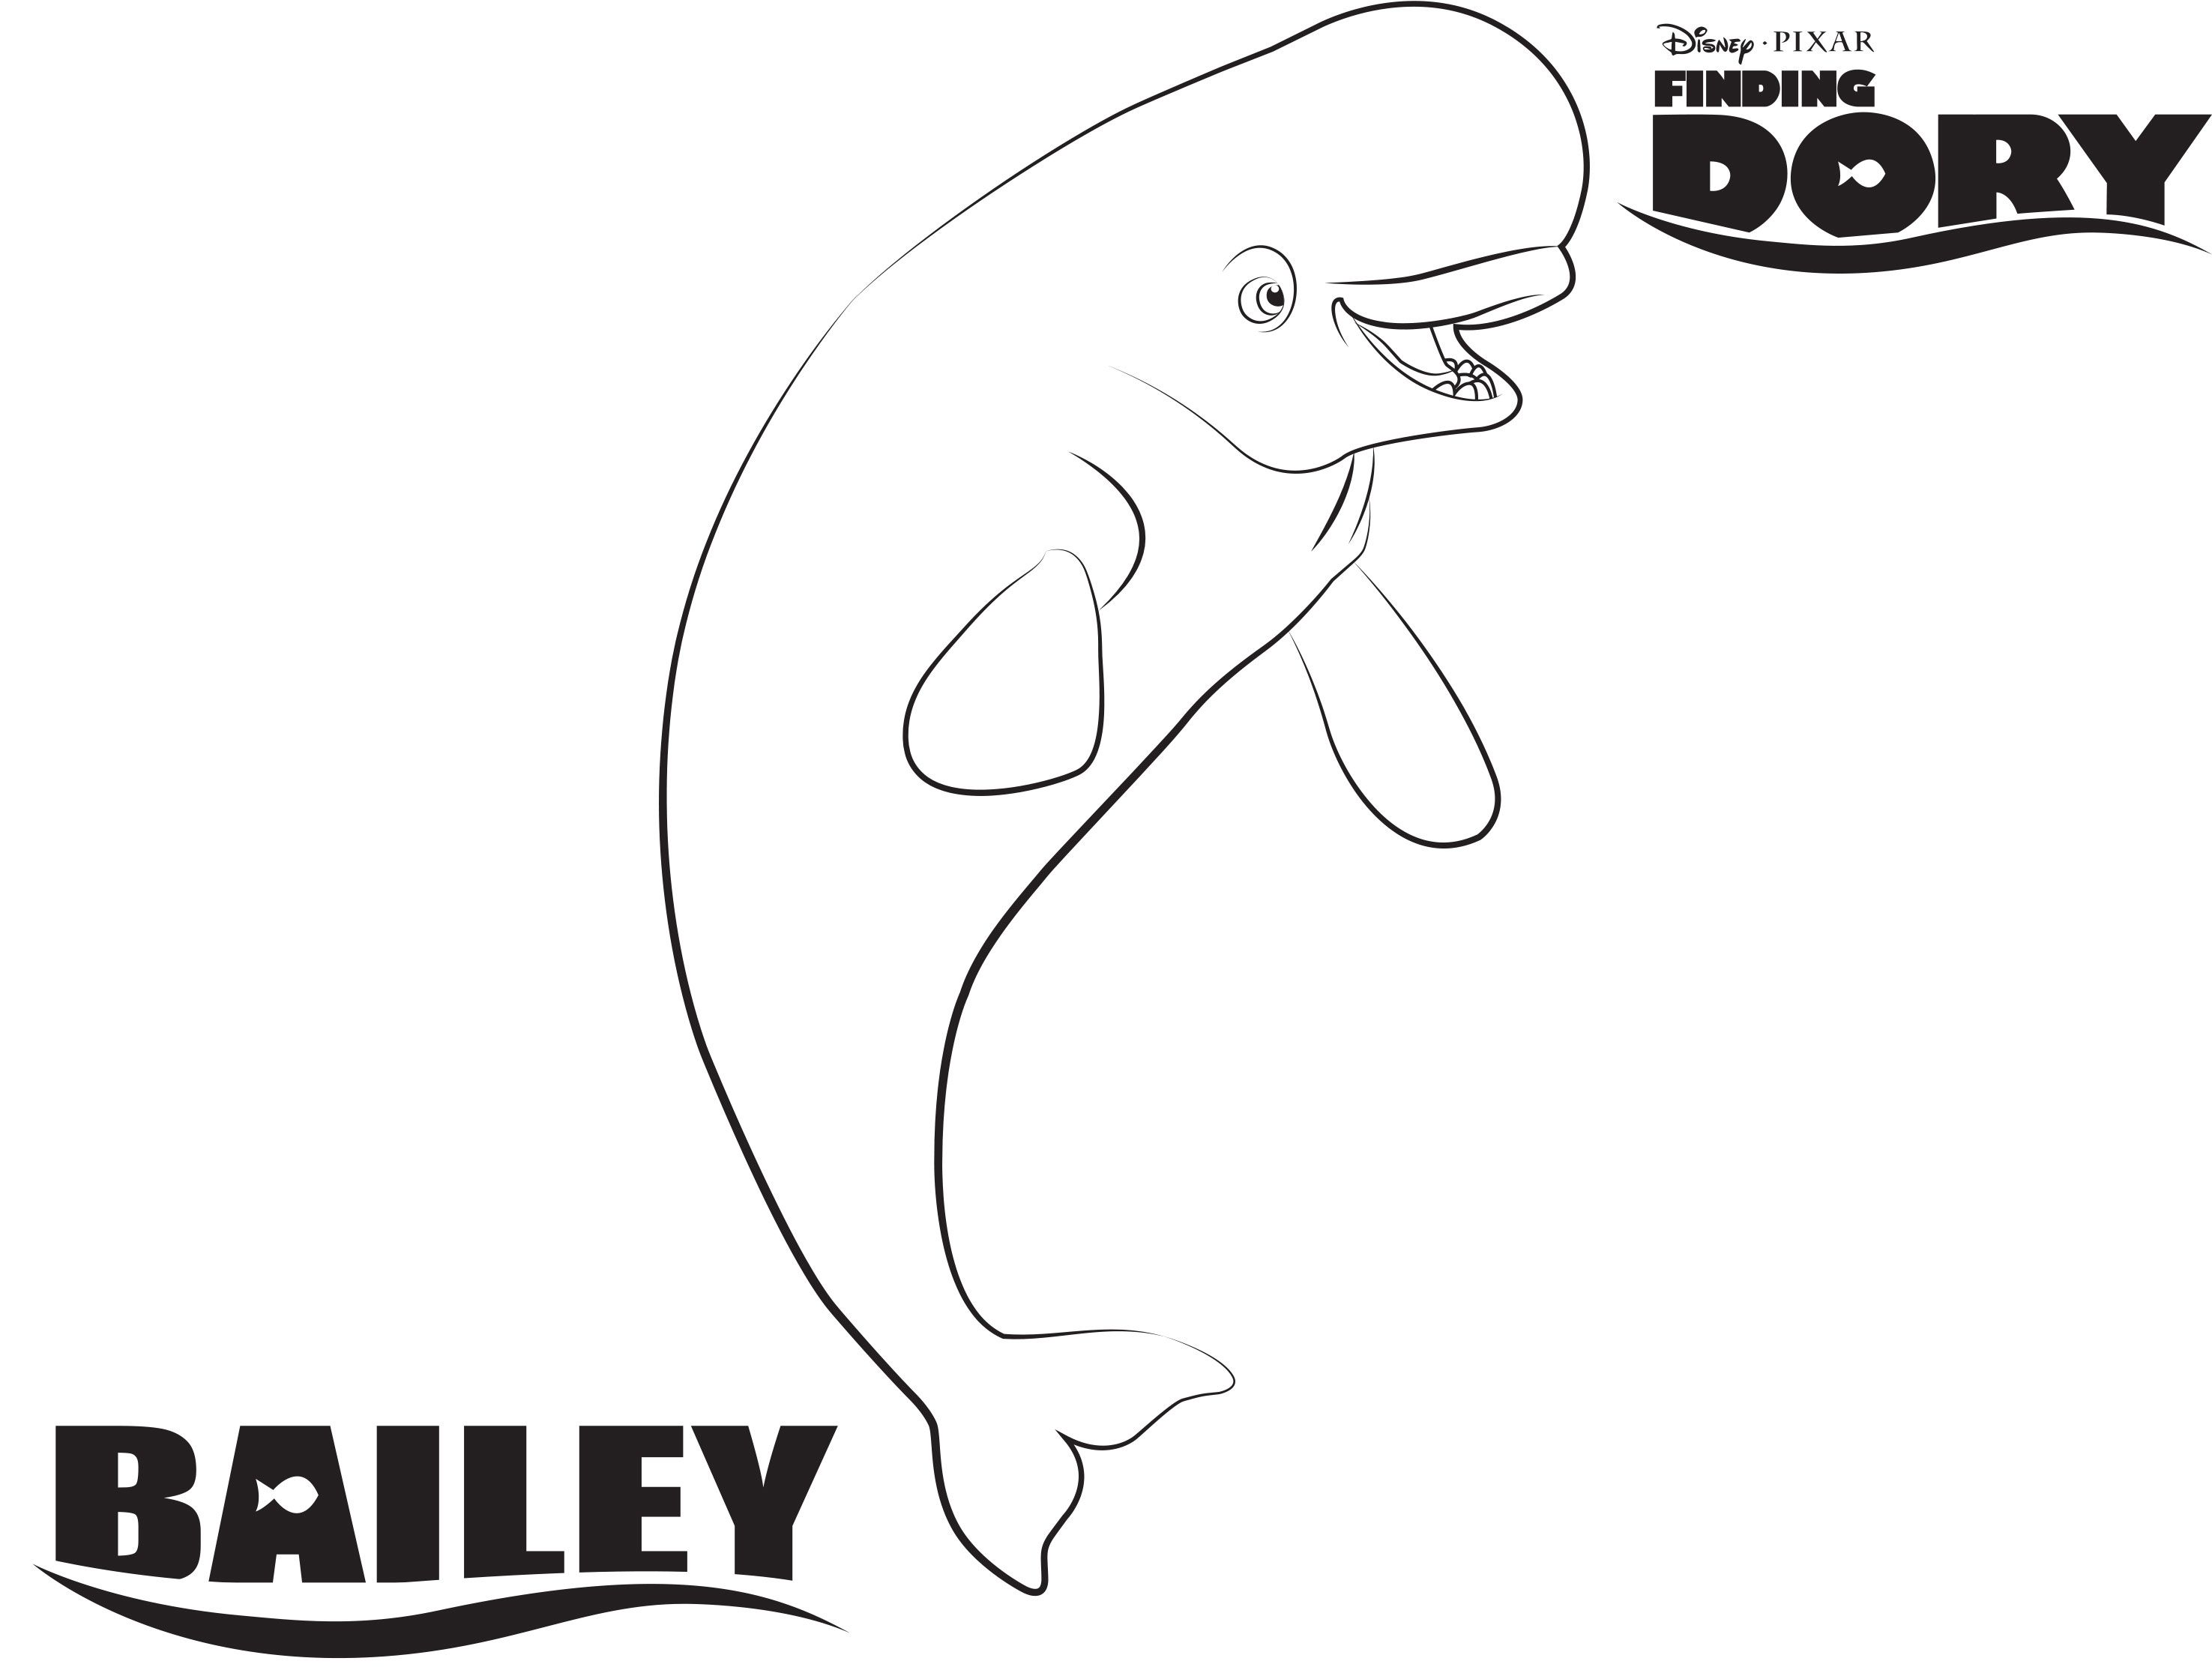 Disney universe coloring pages - Disney S Finding Dory Coloring Pages Sheet Free Disney Printable Finding Dory Color Page